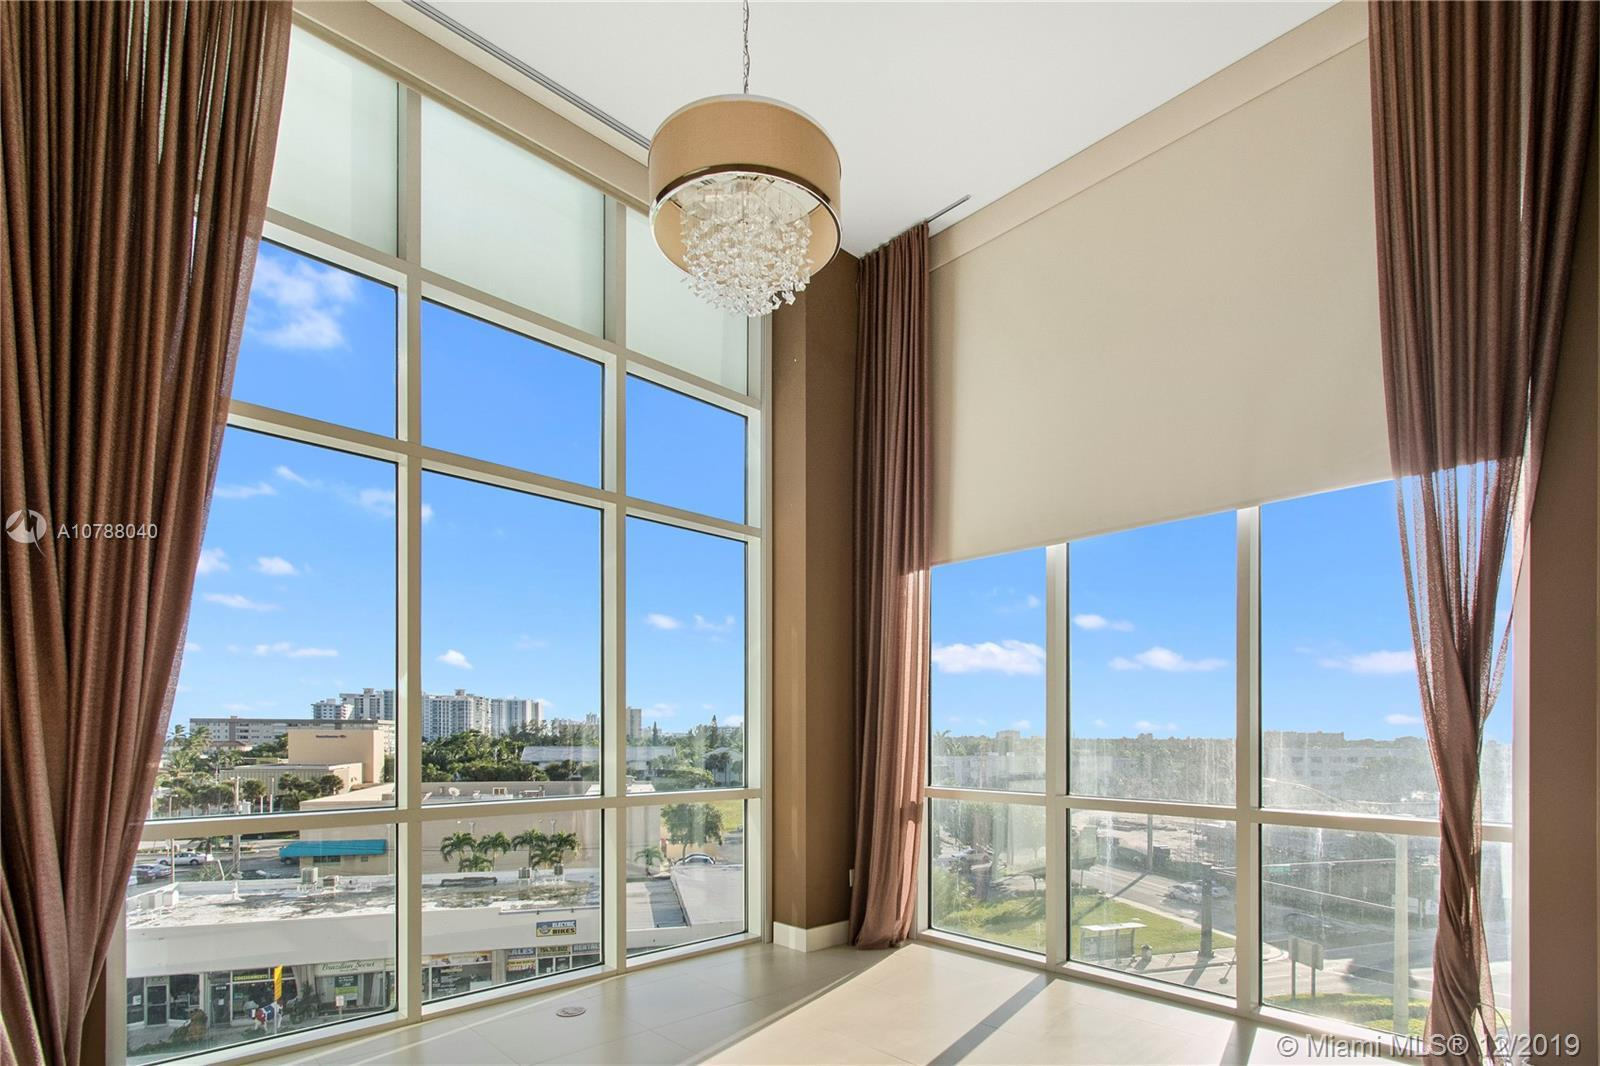 As you enter this 2BR, 2 BA luxury condo, you are taken aback by the magnitude of those 15 ft. ceili